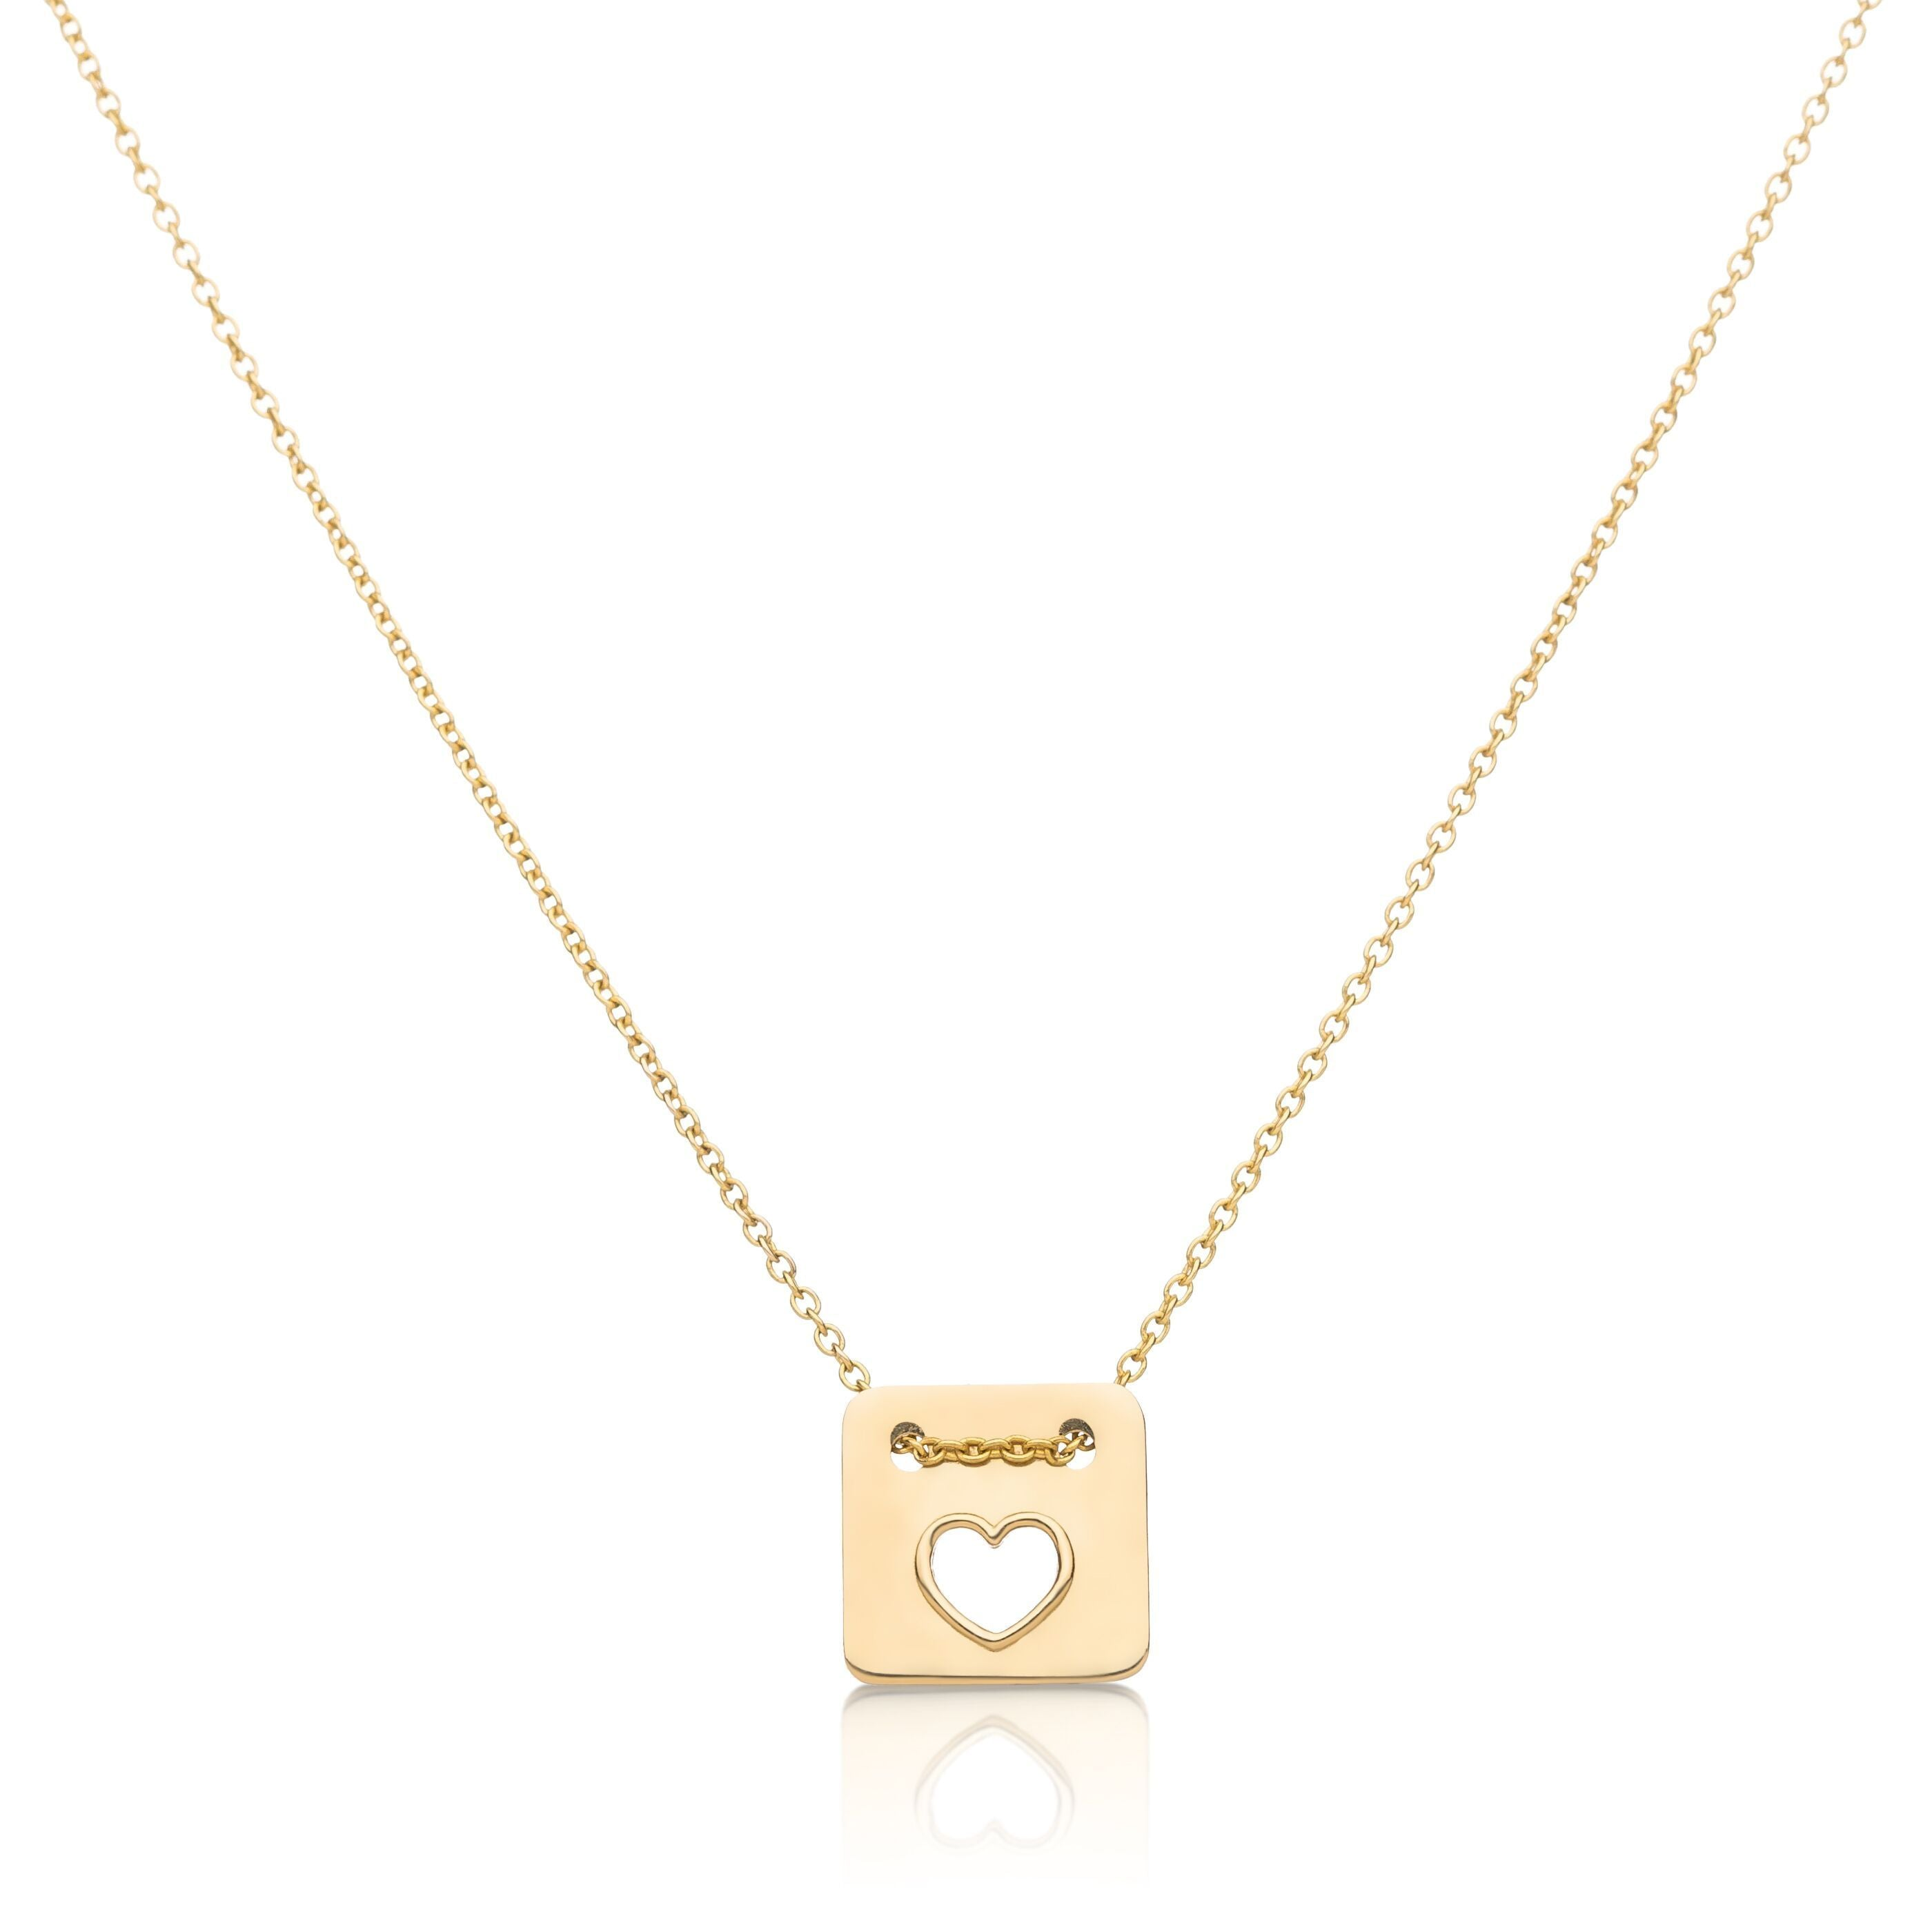 Love Necklace in 14k Gold